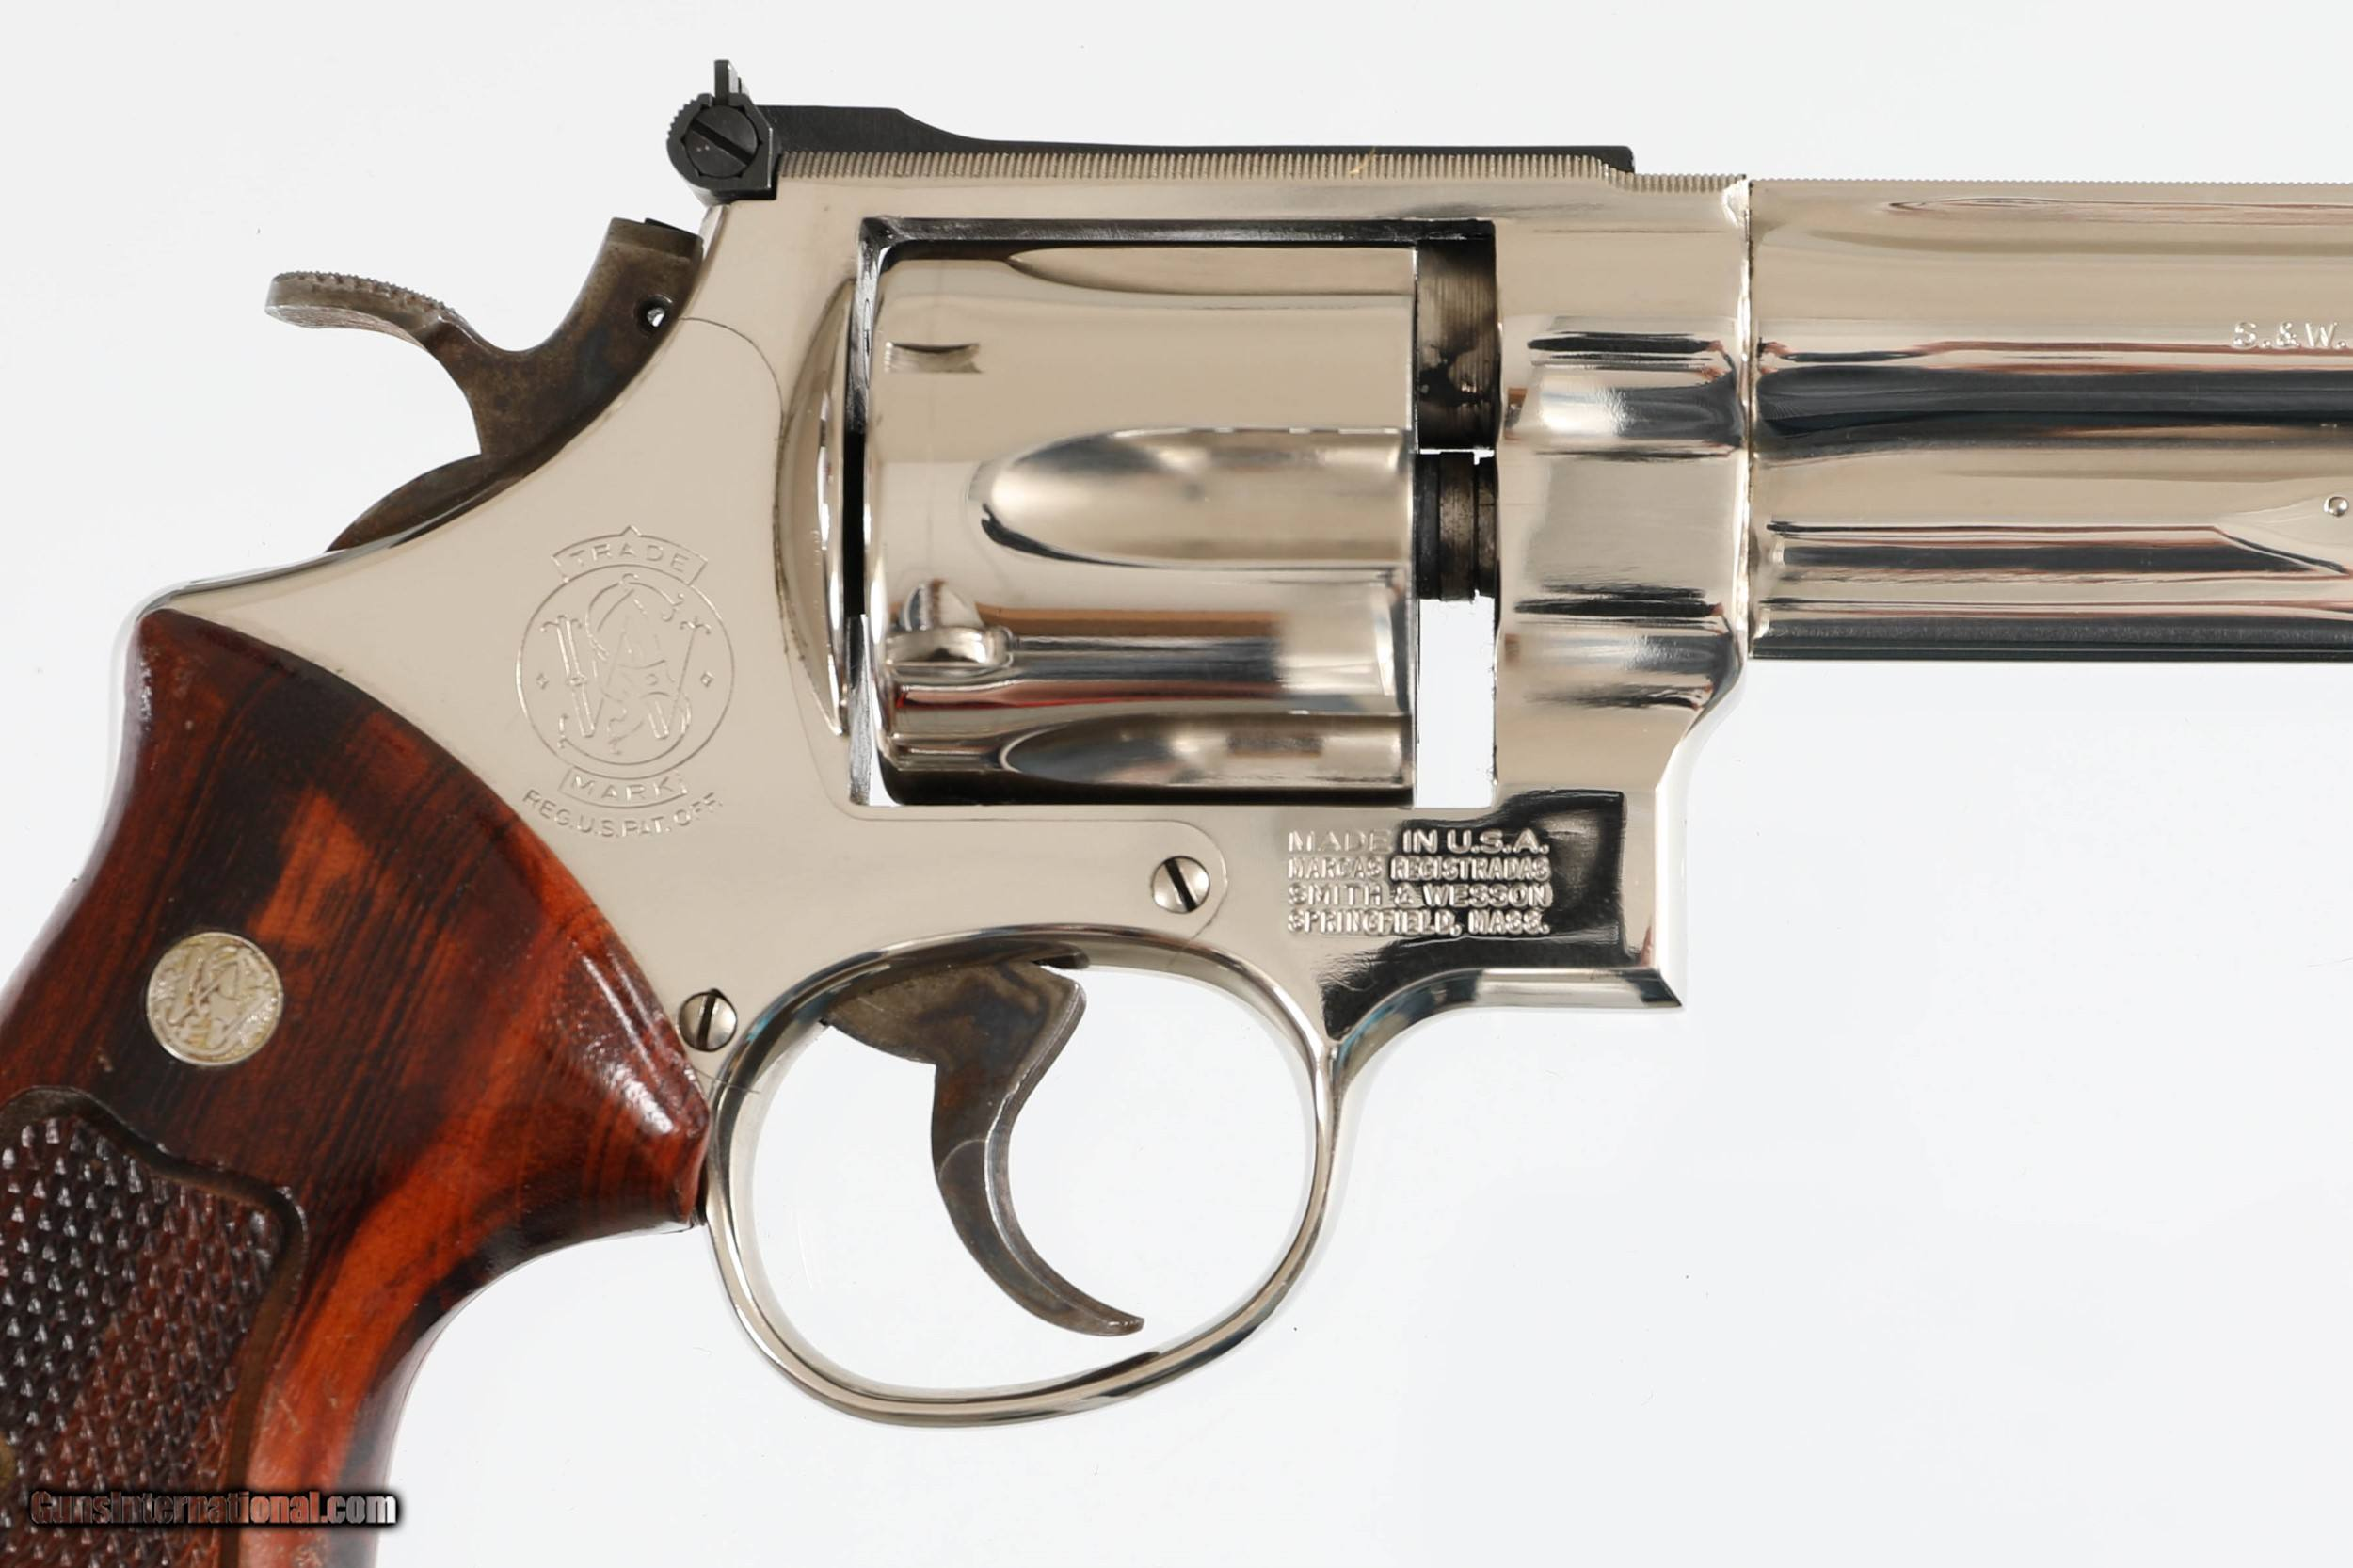 Smith Wesson .357 Magnum: классика от американцев